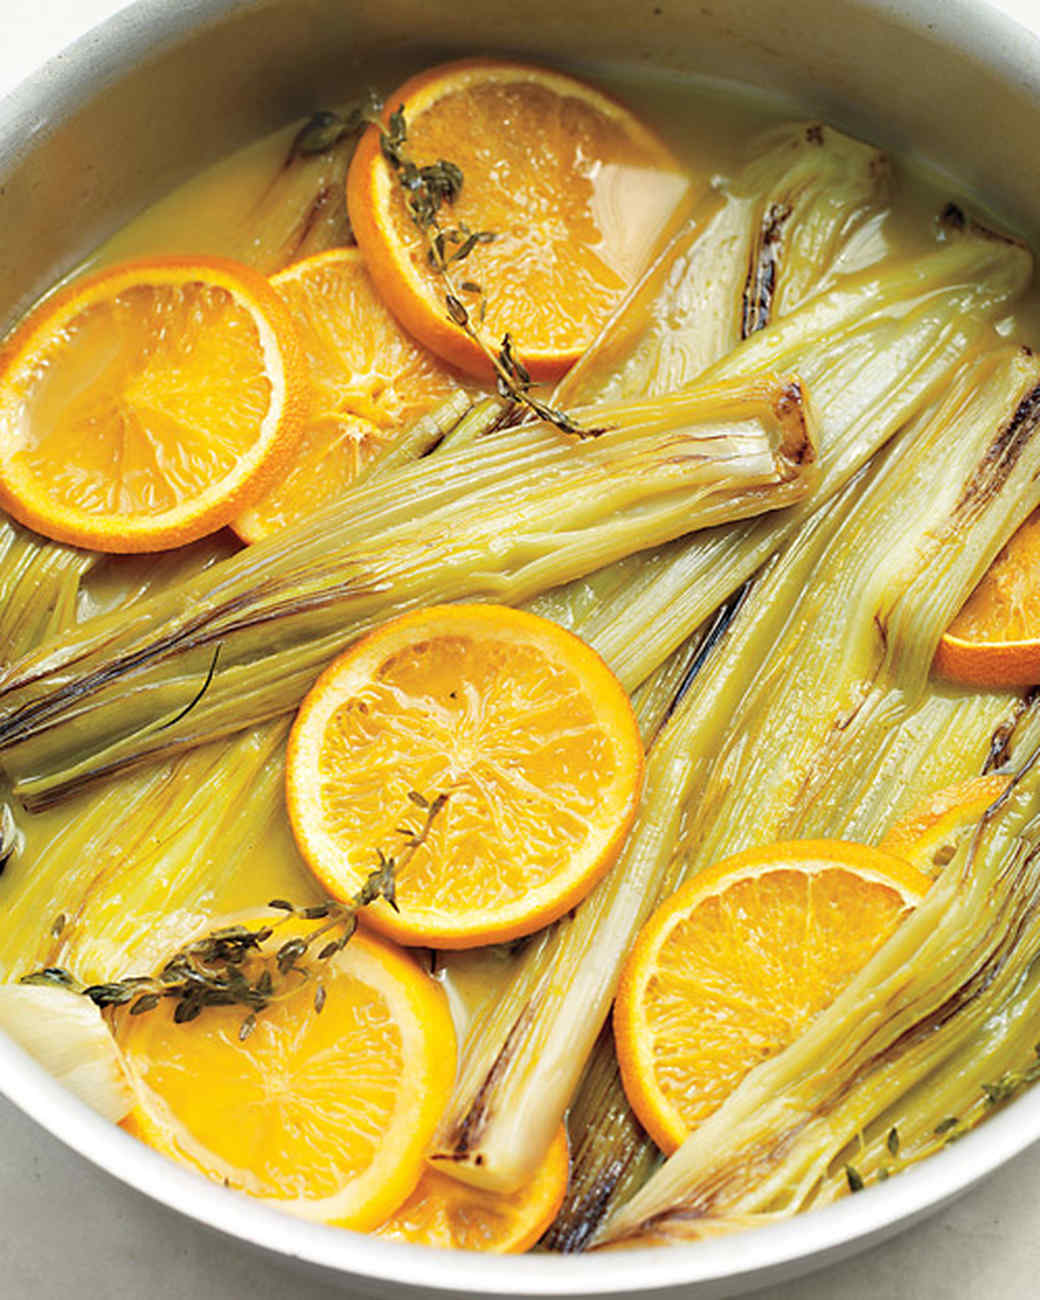 Braised Leeks with Orange